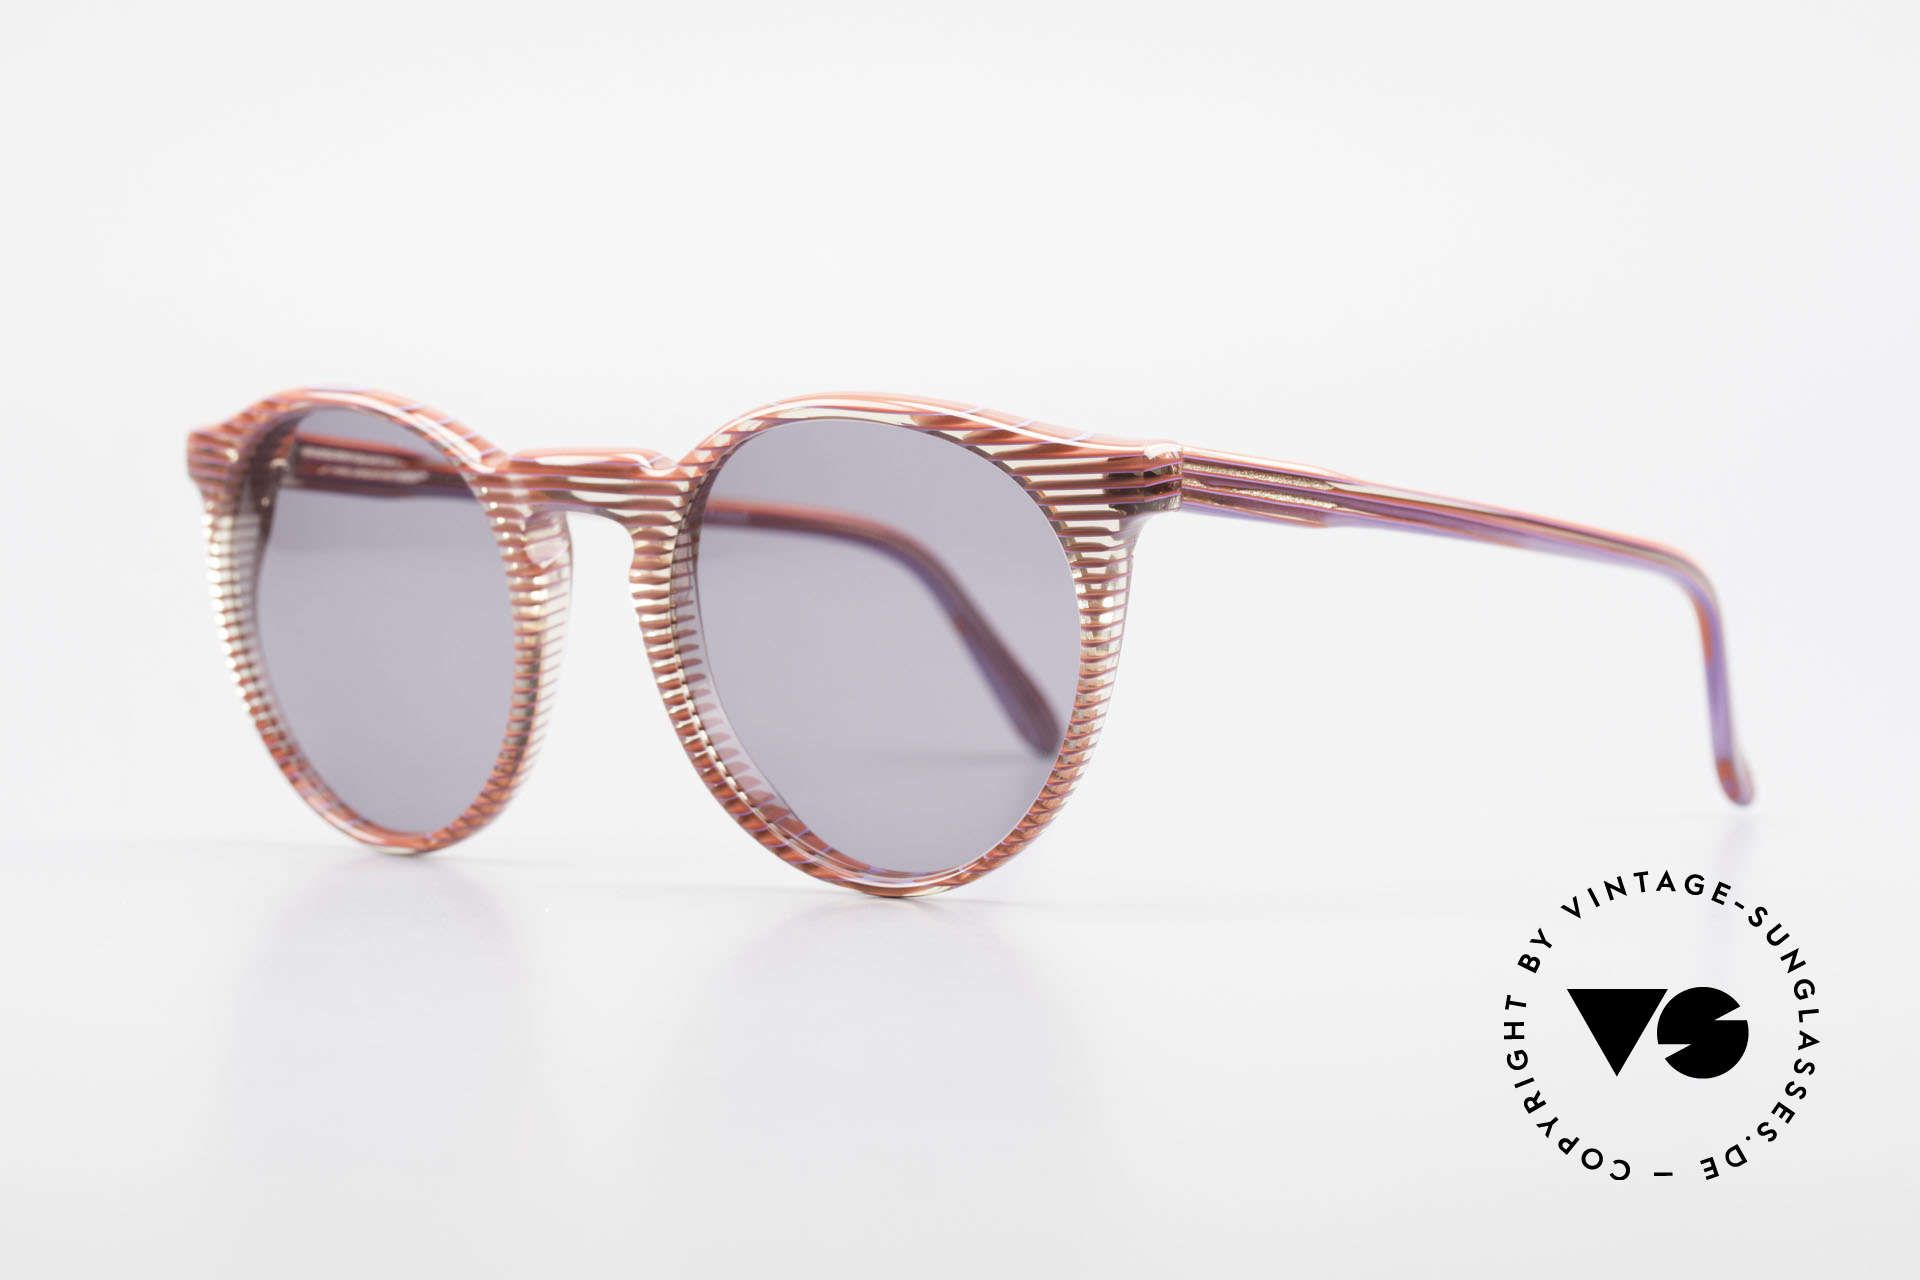 Alain Mikli 034 / 274 80's Ladies Panto Sunglasses, truly unique; with stripes in red / crystal / purple, Made for Women